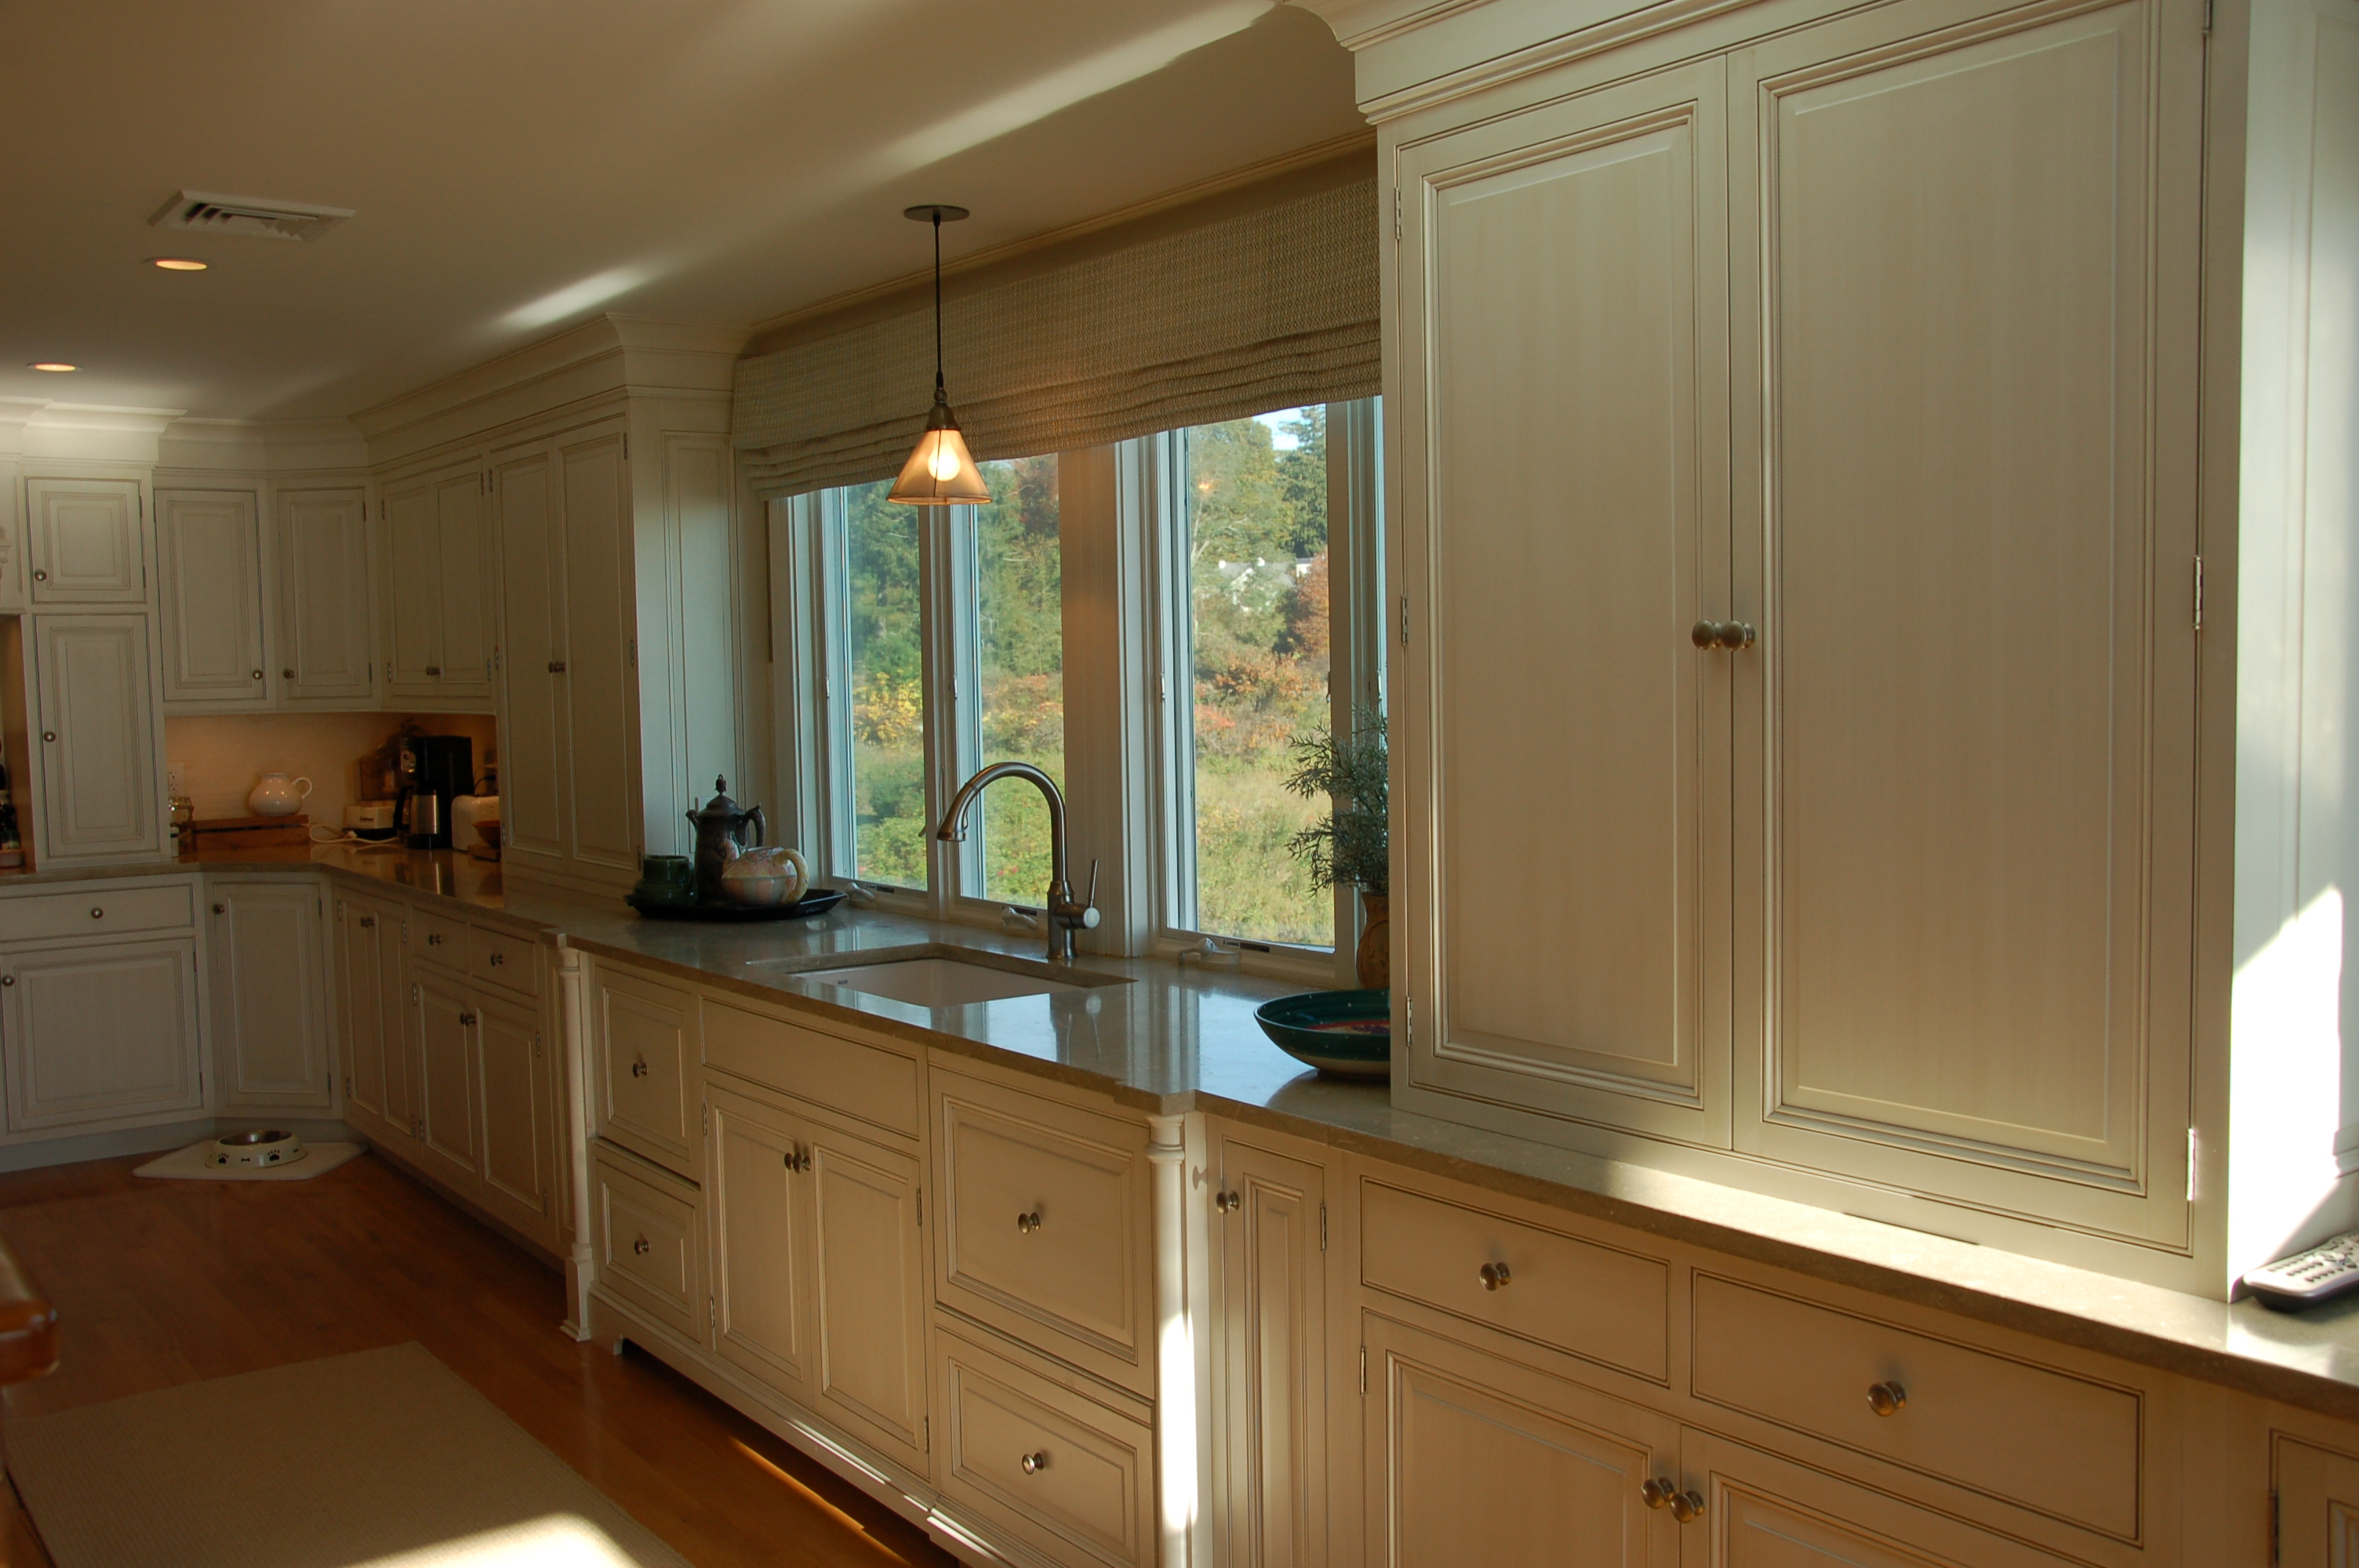 Kitchen Design Duxbury MA South Shore Cabinet